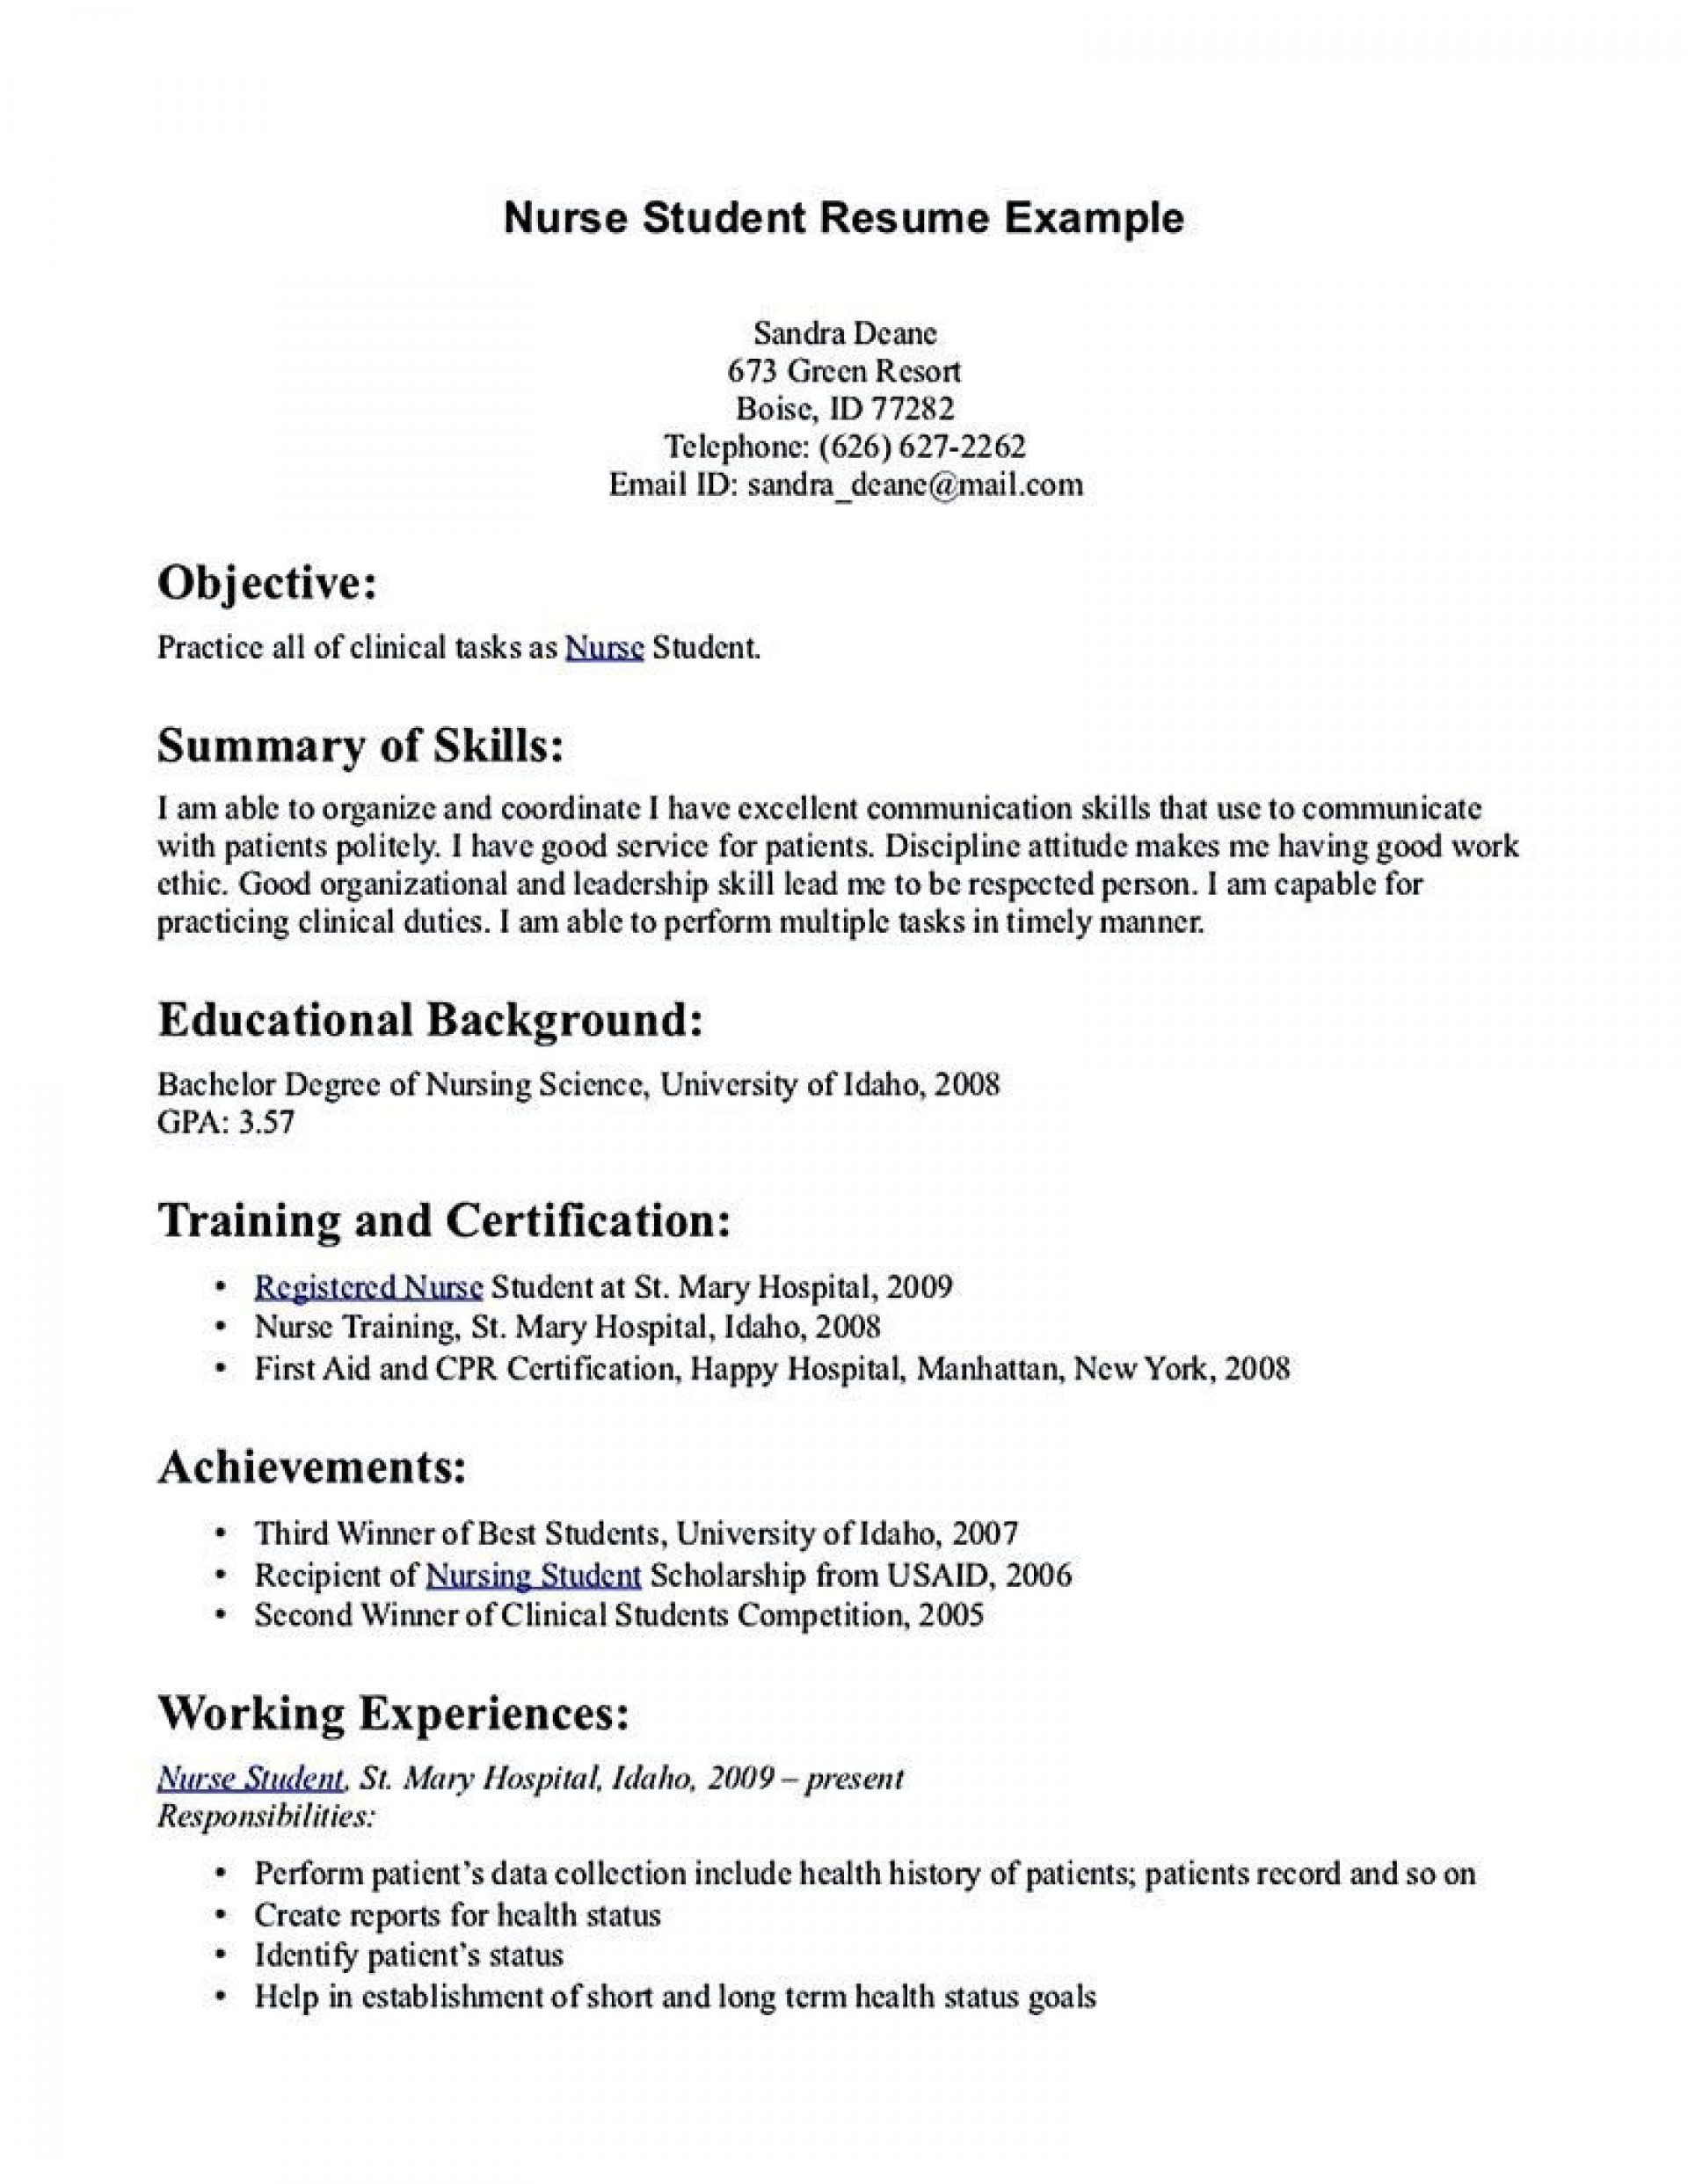 002 Excellent Nursing Student Resume Template Inspiration  Templates Free Word1920